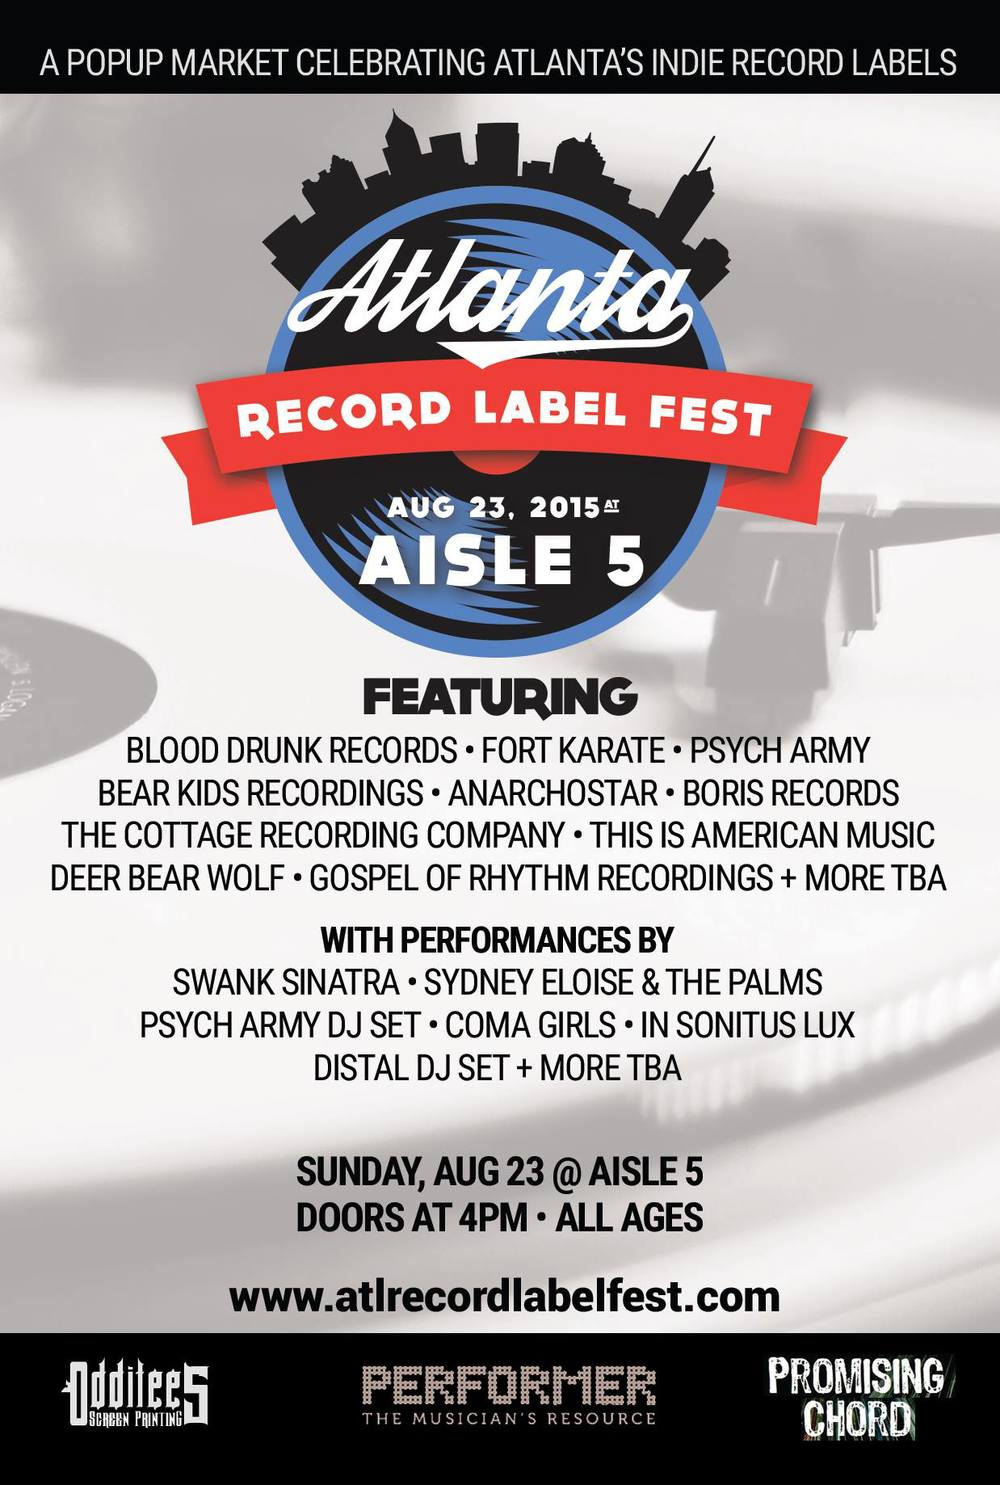 Atlanta's record labels are coming together to celebrate the local music scene this Sunday at Aisle 5.